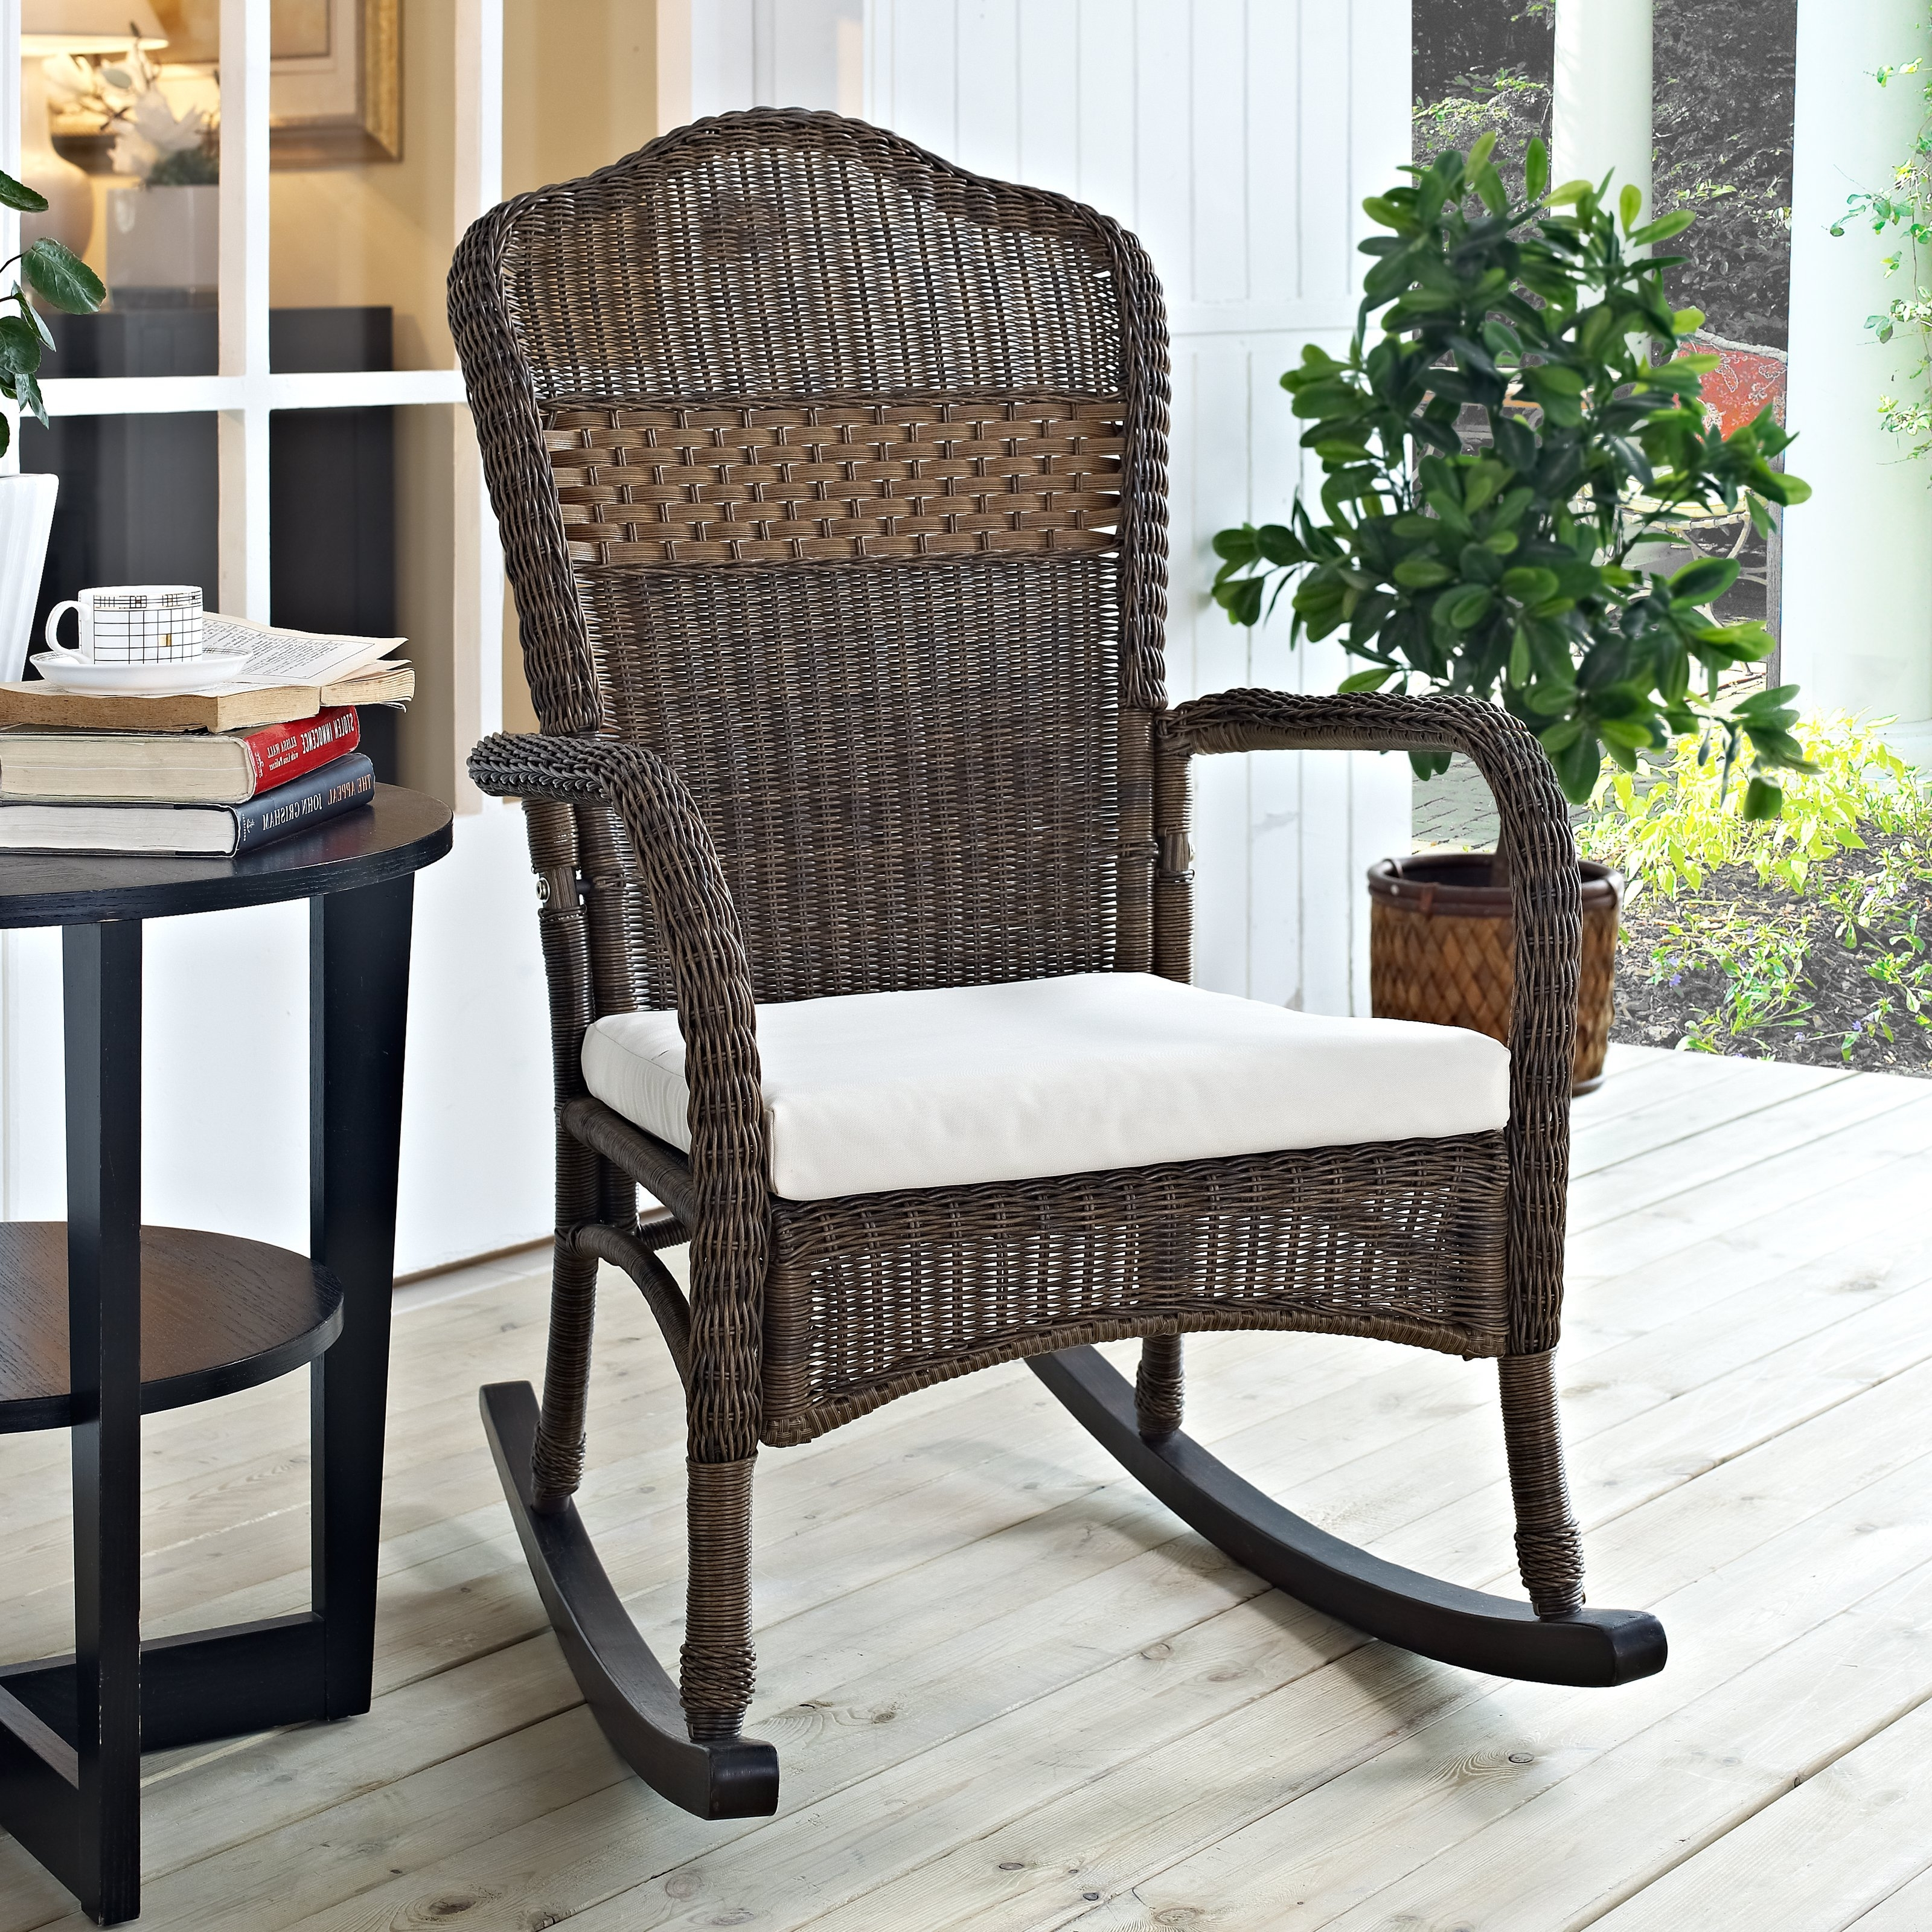 Unique Outdoor Rocking Chairs With Regard To Well Known Coral Coast Mocha Resin Wicker Rocking Chair With Beige Cushion (View 19 of 20)